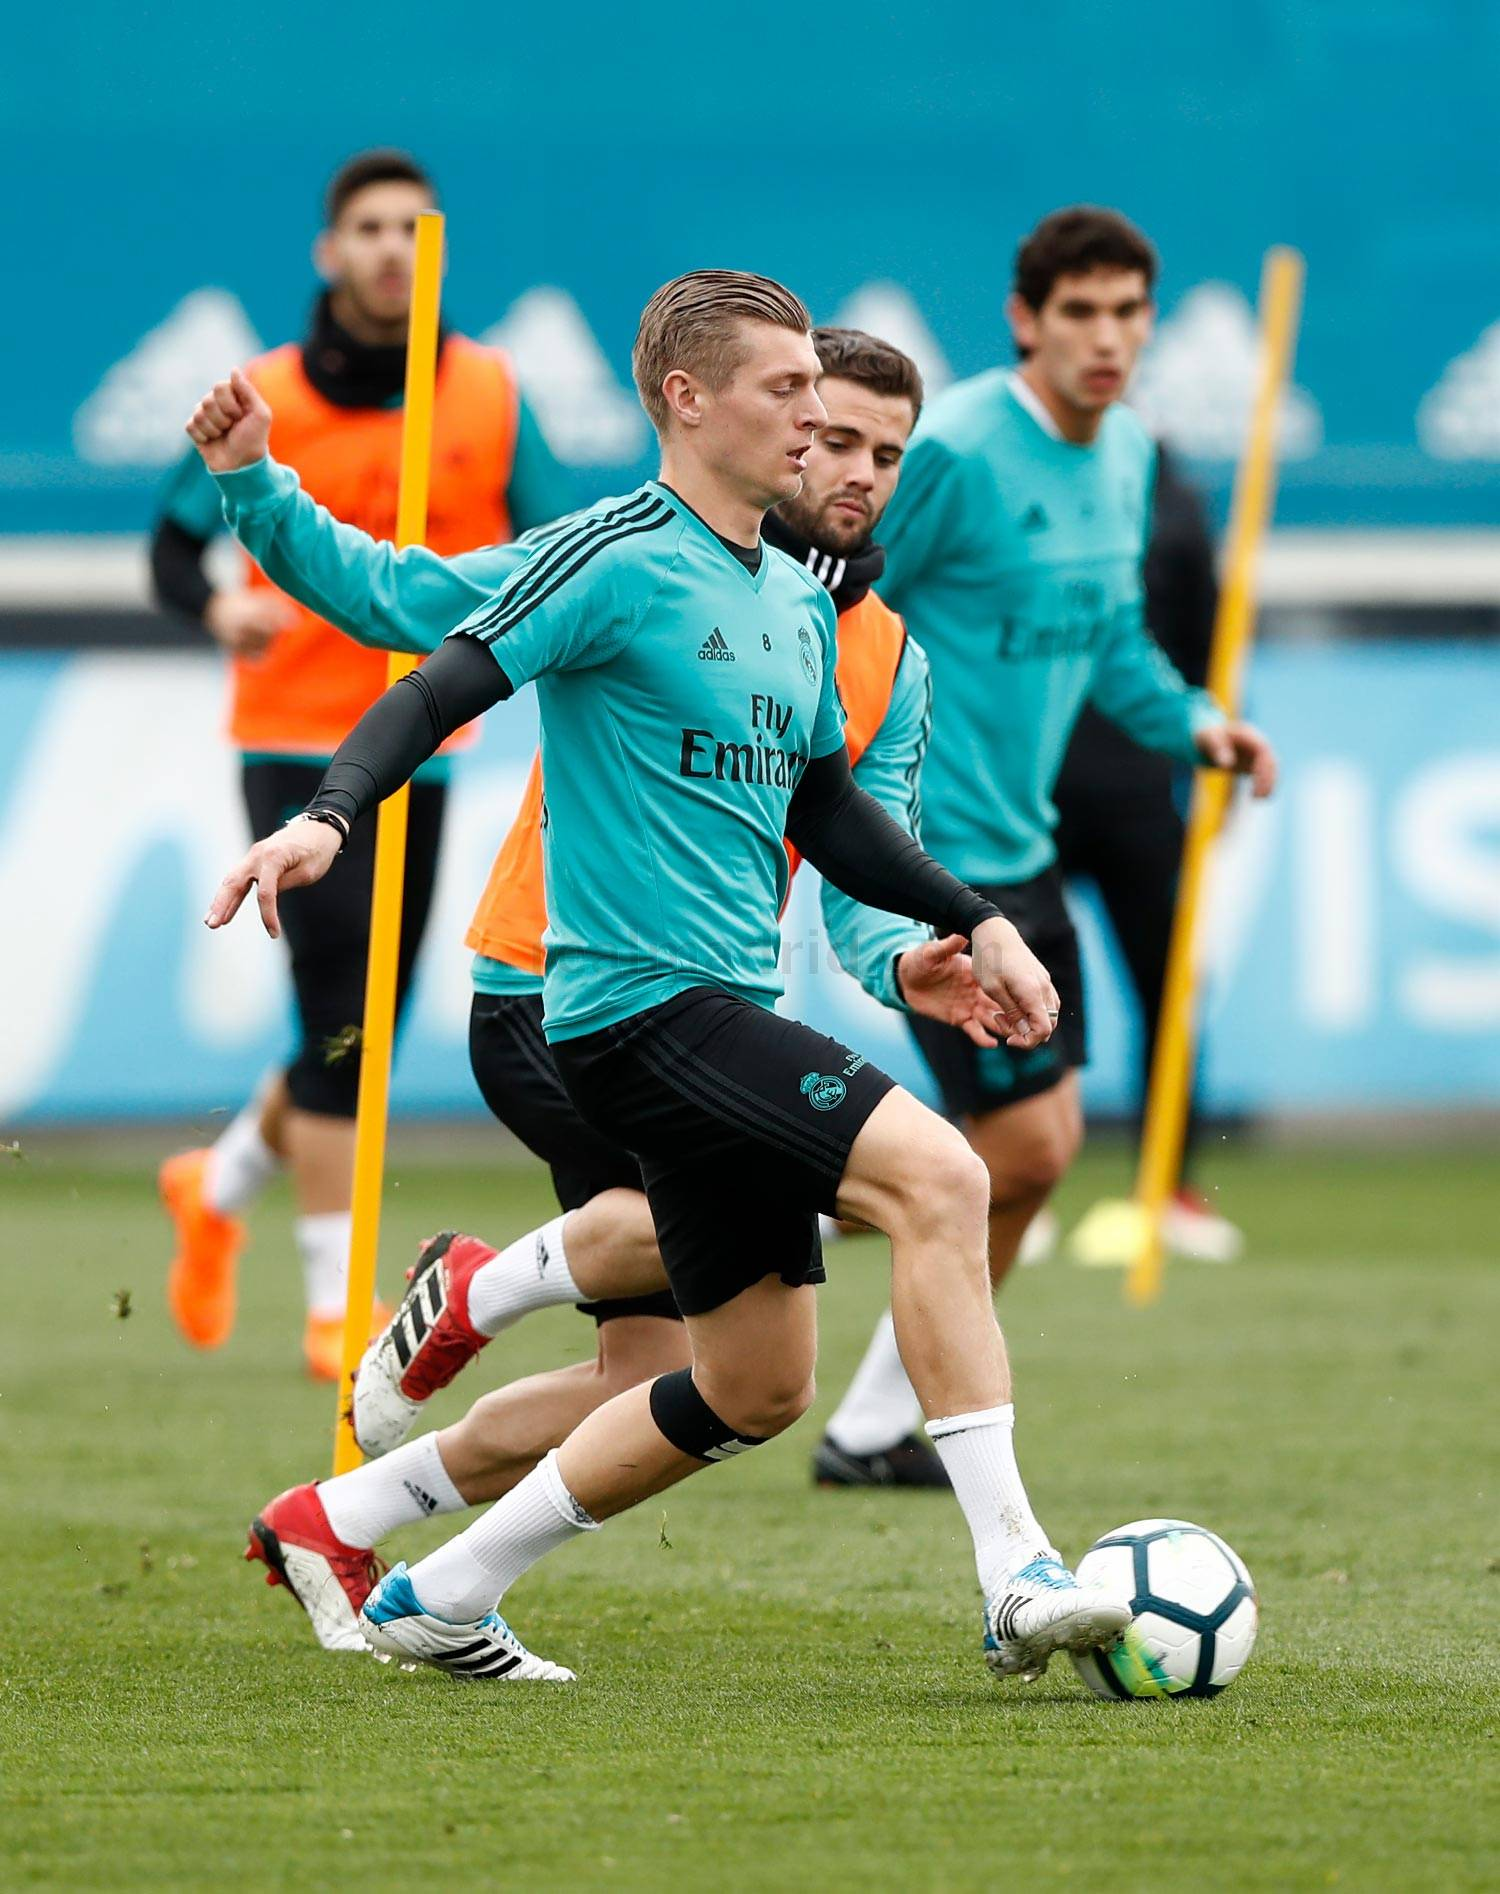 Real Madrid - Entrenamiento del Real Madrid - 13-03-2018